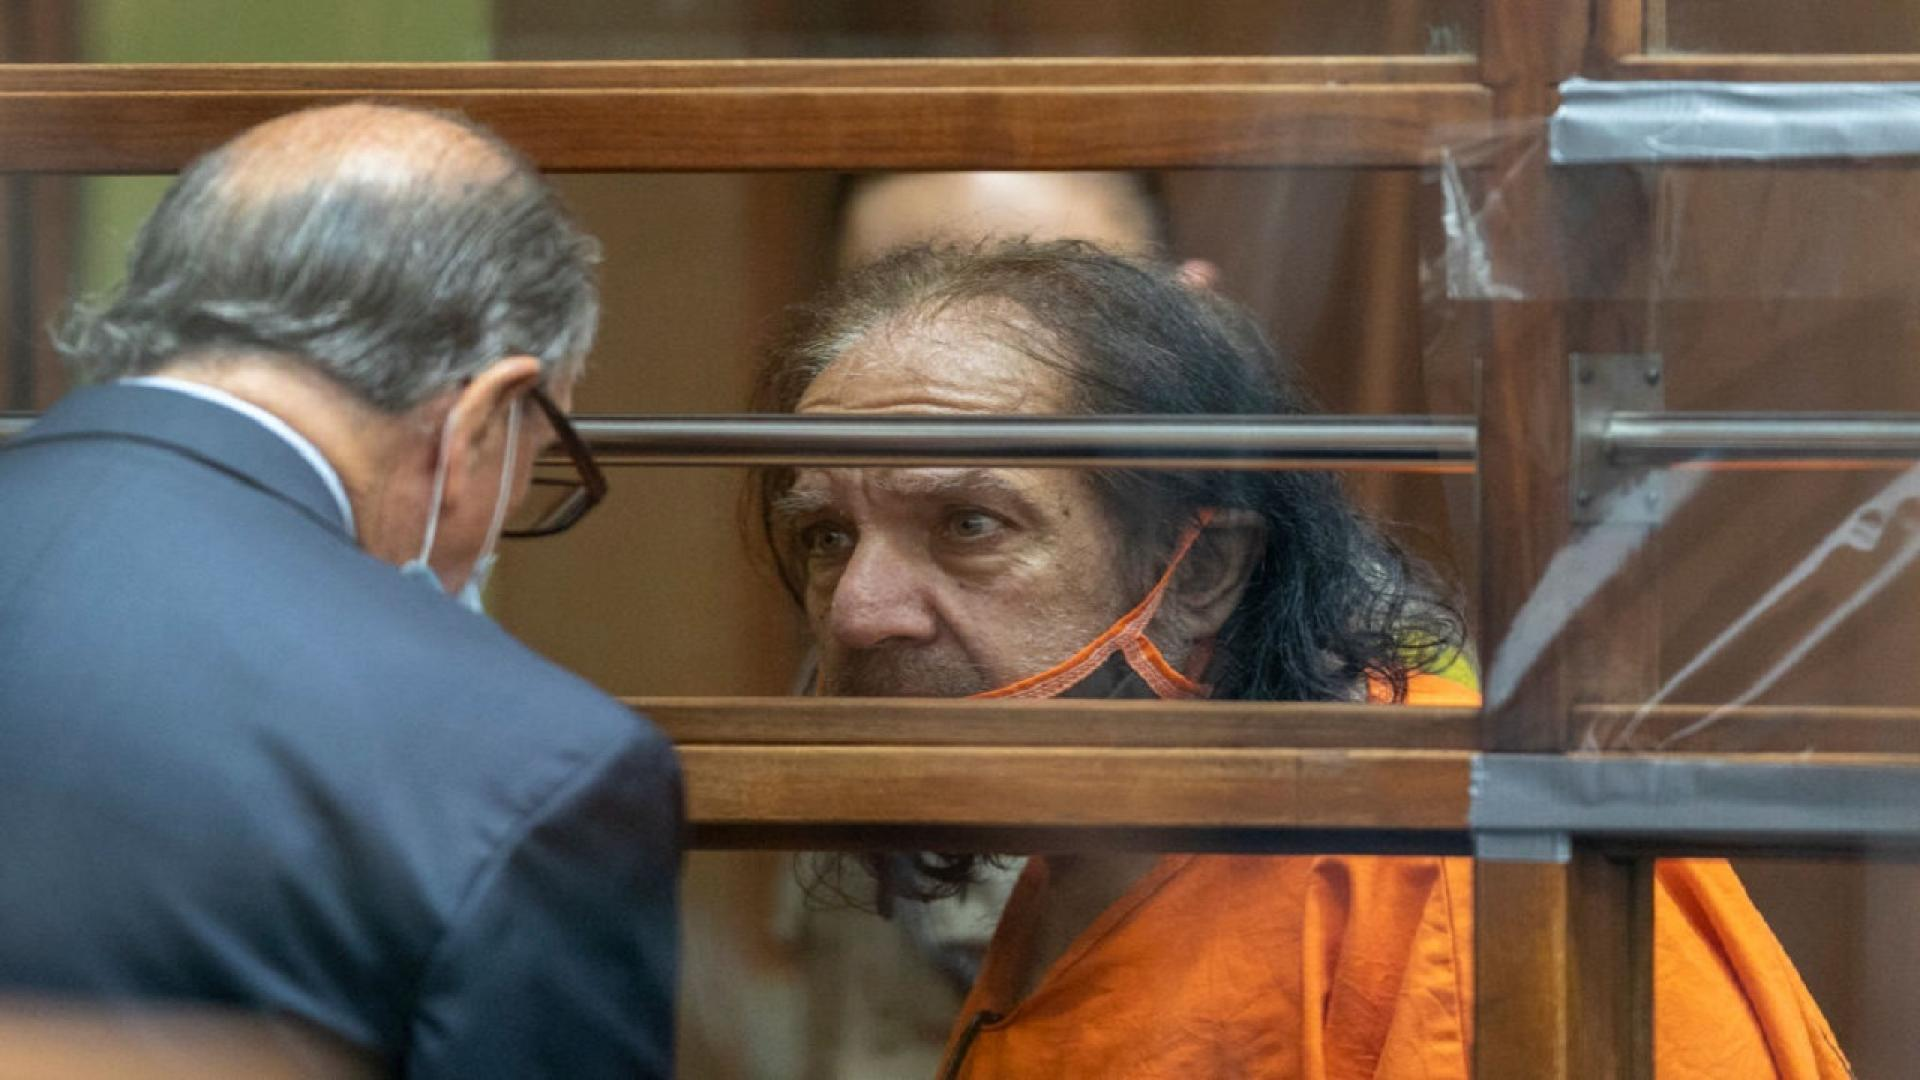 Porn star Ron Jeremy at a Los Angeles criminal court hearing.